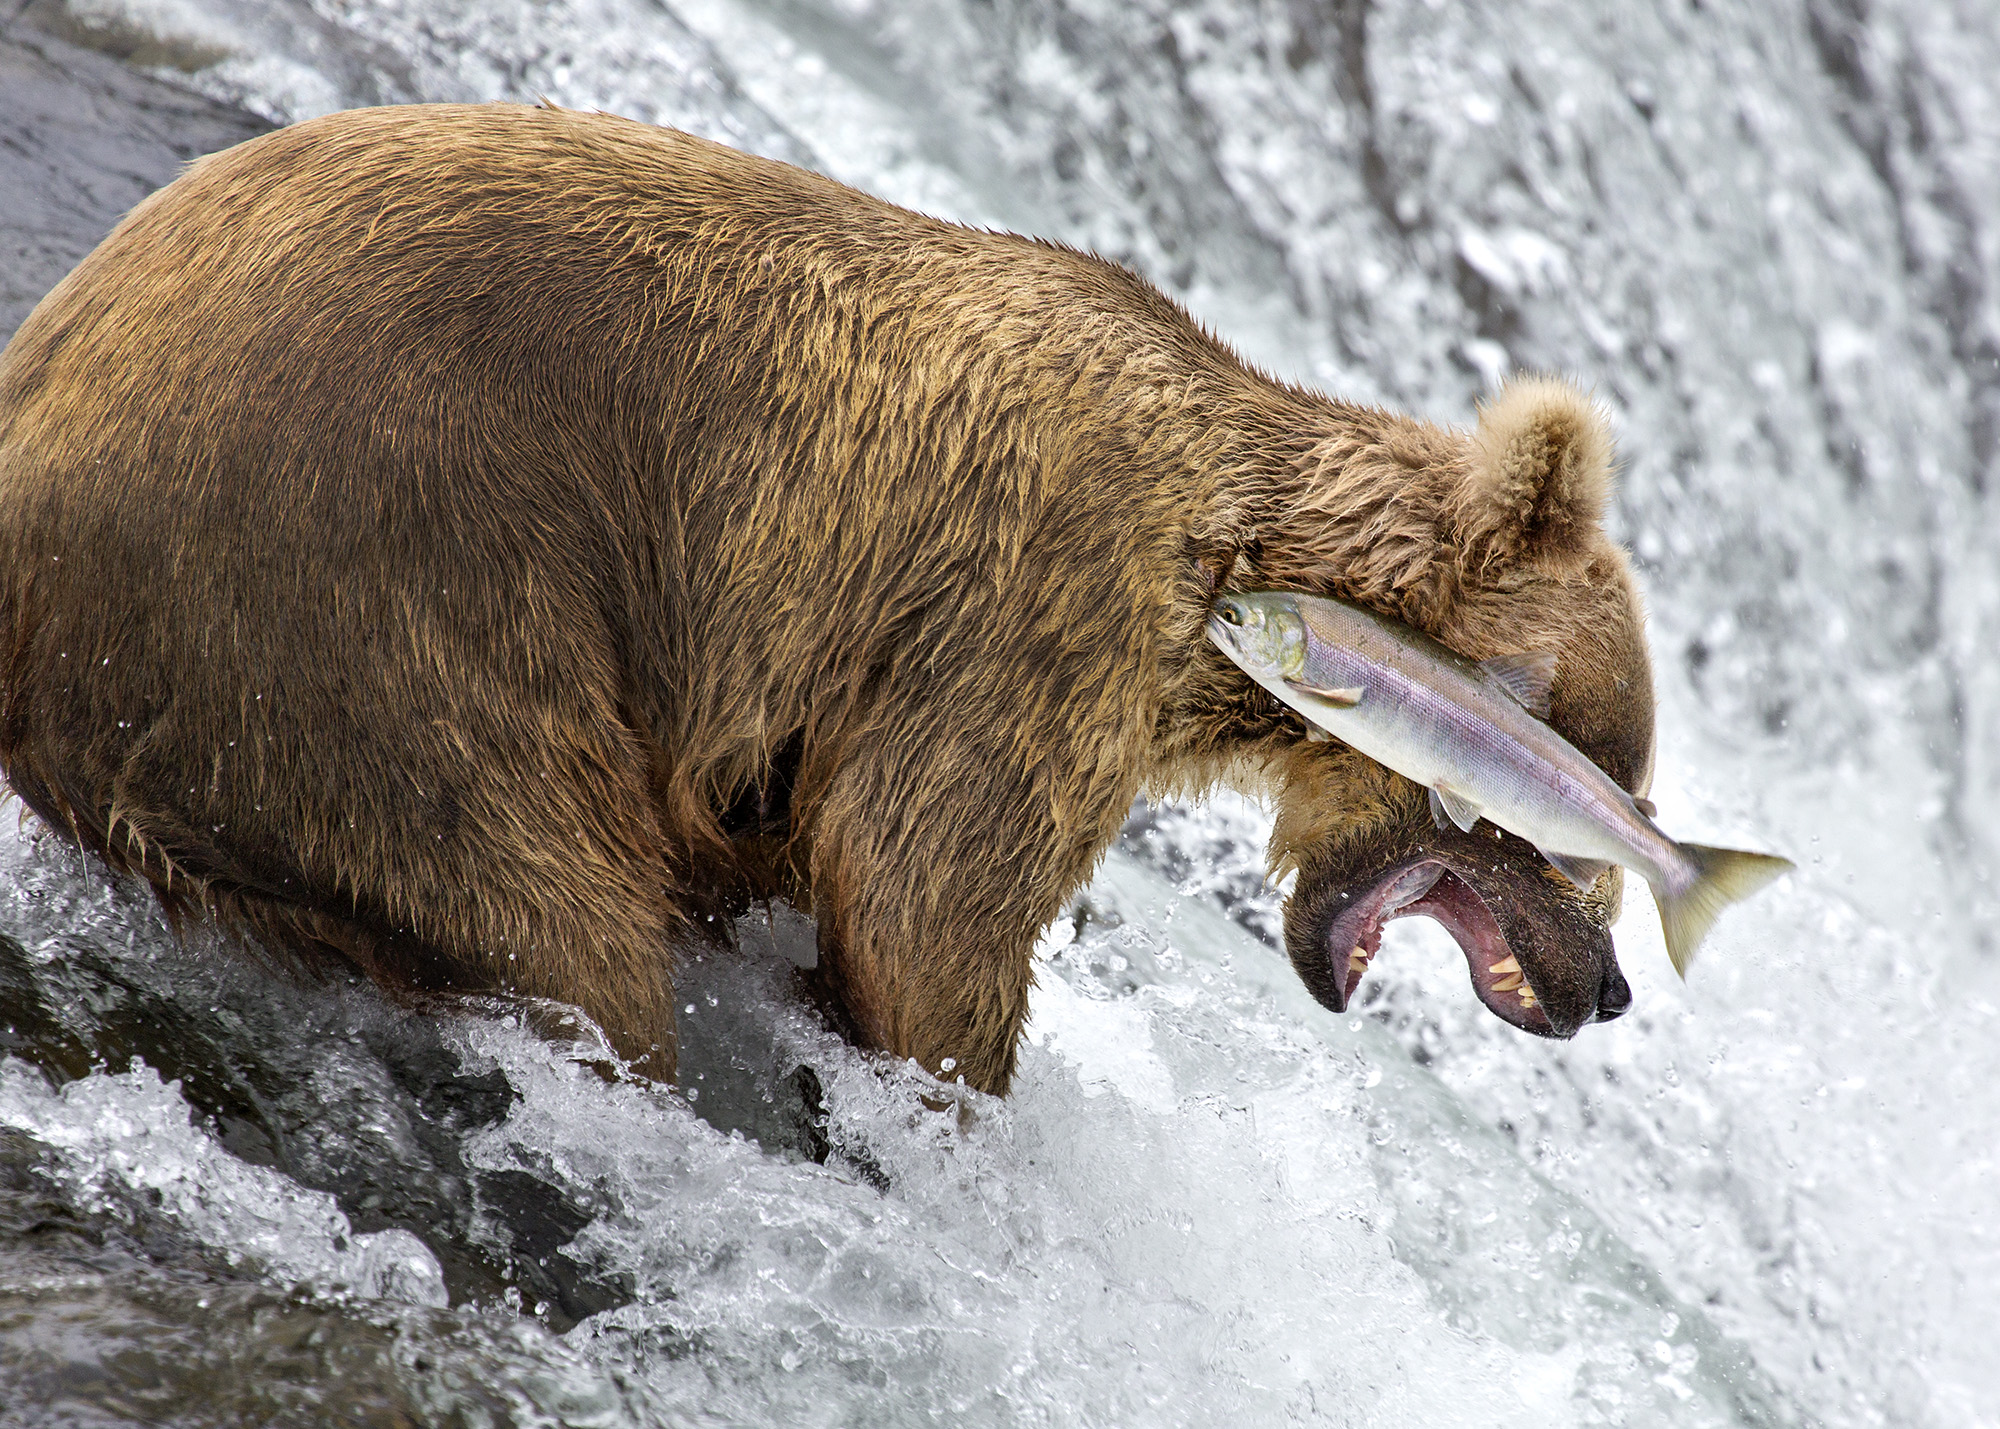 A grizzly bear does a bad job of catching a salmon at Brooks Falls in Katmai National Park, Alaska. Photo by Rob Kroenert /The Comedy Wildlife Photography Awards.